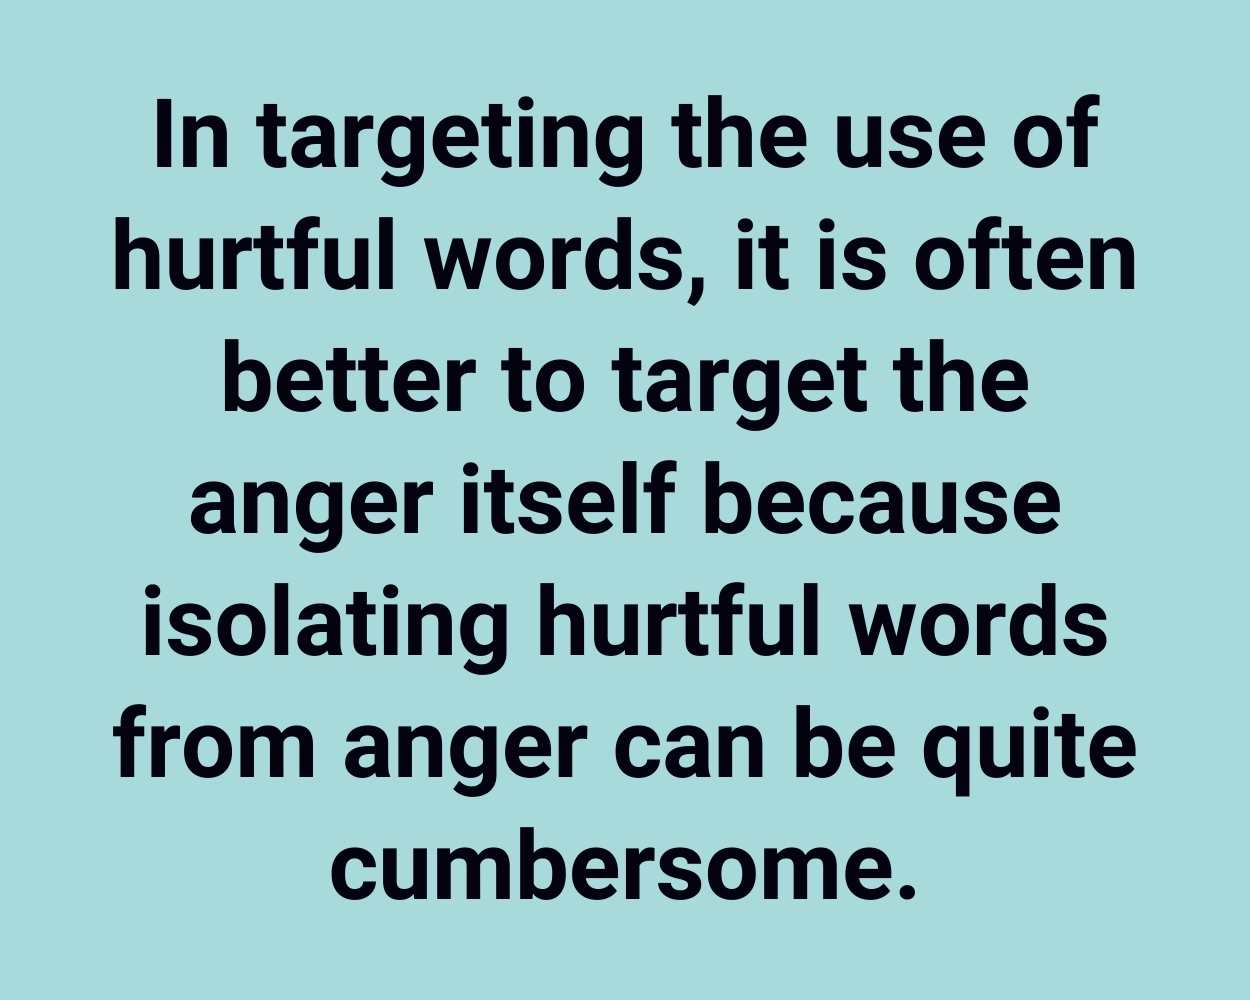 In targeting the use of hurtful words, it is often better to target the anger itself because isolating hurtful words from anger can be quite cumbersome.